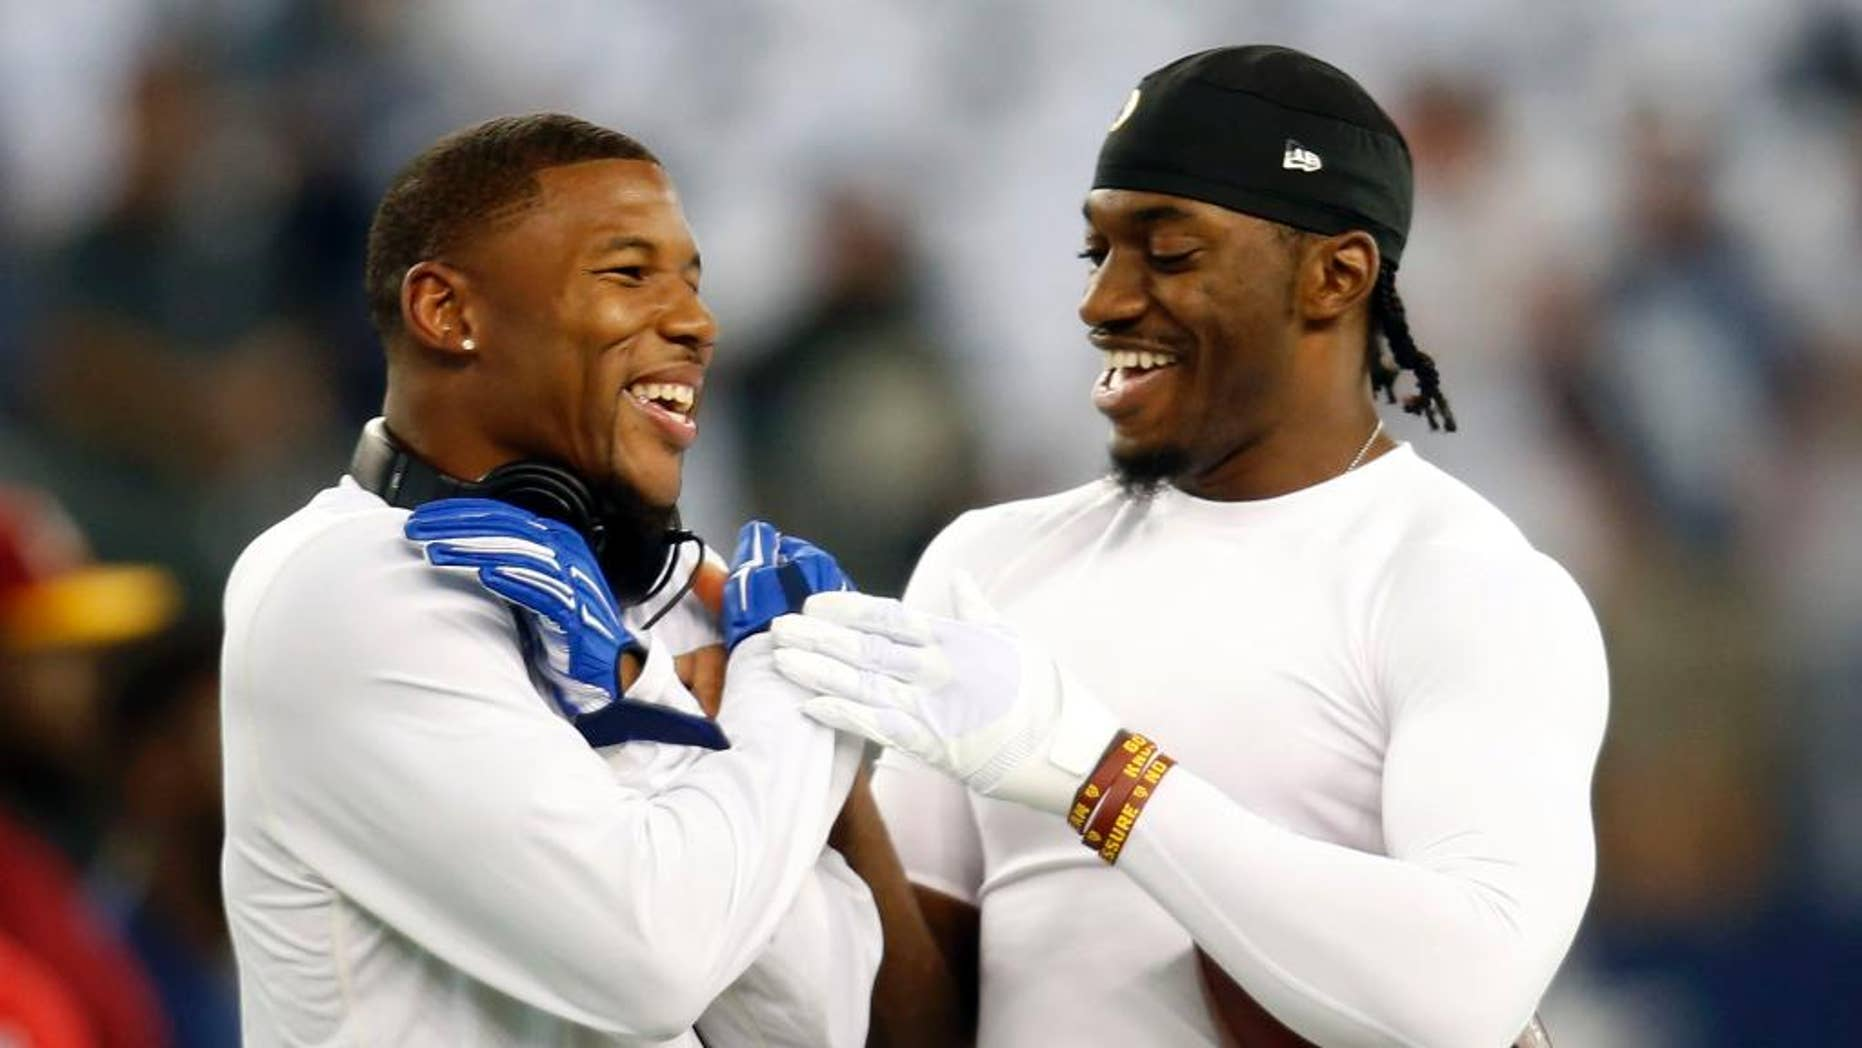 Dallas Cowboys wide receiver Terrance Williams, left, and Washington Redskins quarterback Robert Griffin III, right, greet each other on the field during warm ups before an NFL football game, Monday, Oct. 27, 2014, in Arlington, Texas. Williams and Griffin III played at Baylor University as teammates before entering the NFL. (AP Photo/Tim Sharp)